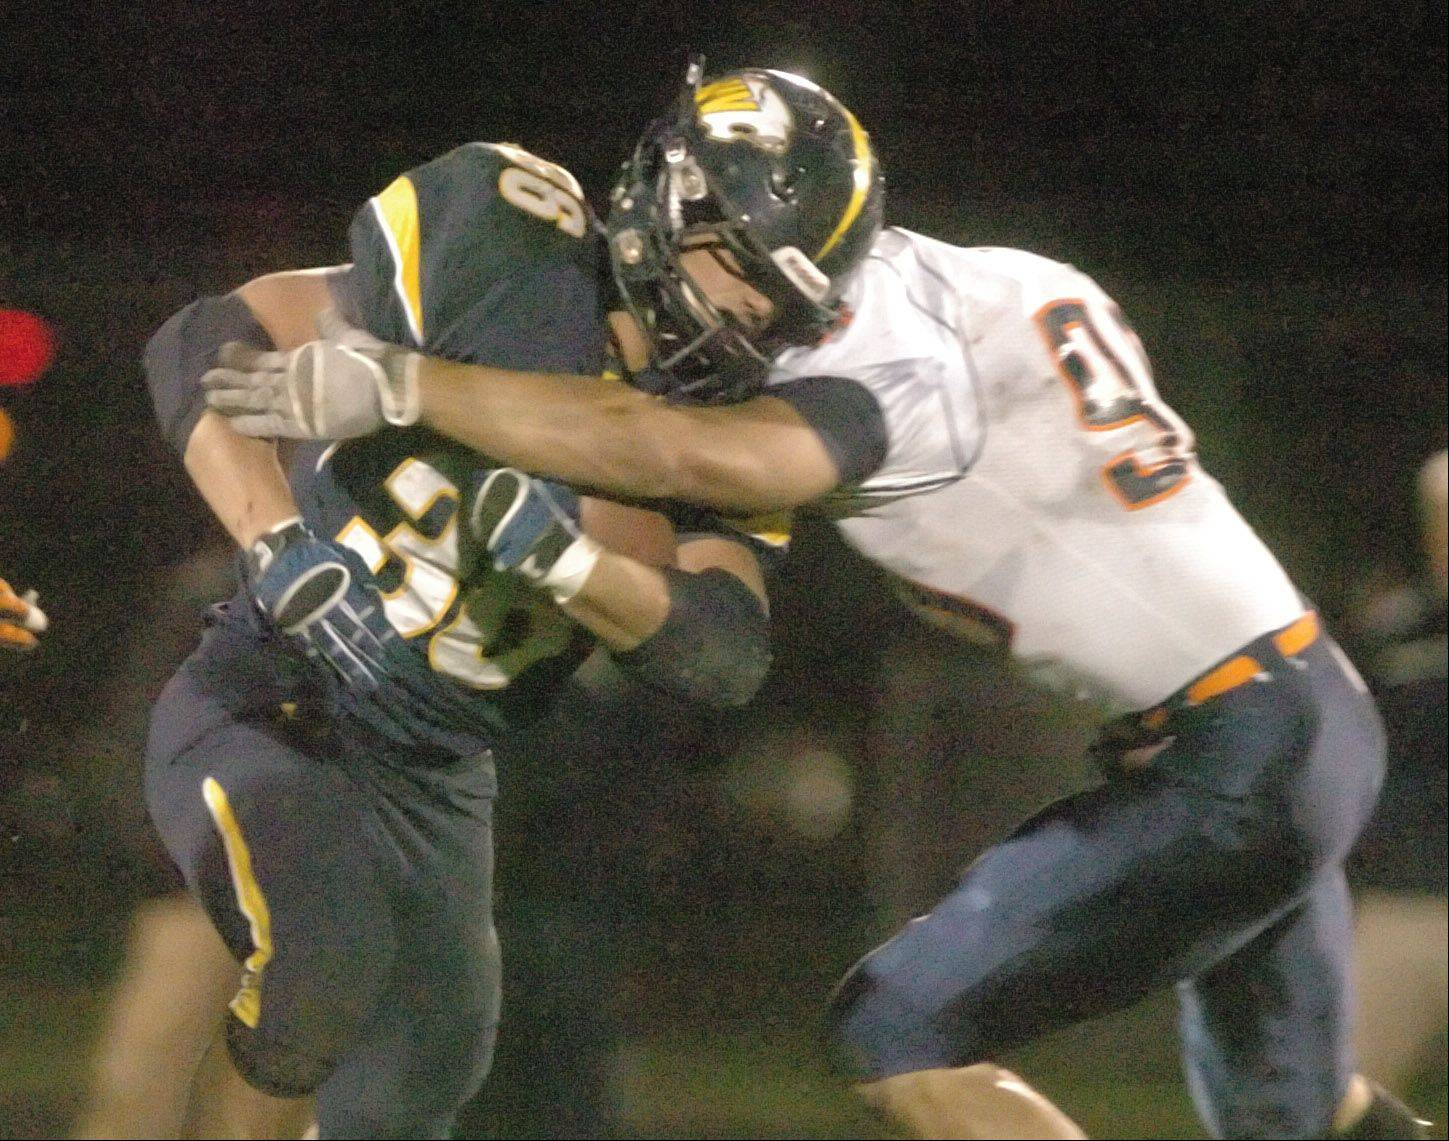 Joey Rhattigan moves the ball around a Naperville North defender during the Naperville North at Neuqua Valley football game Friday.